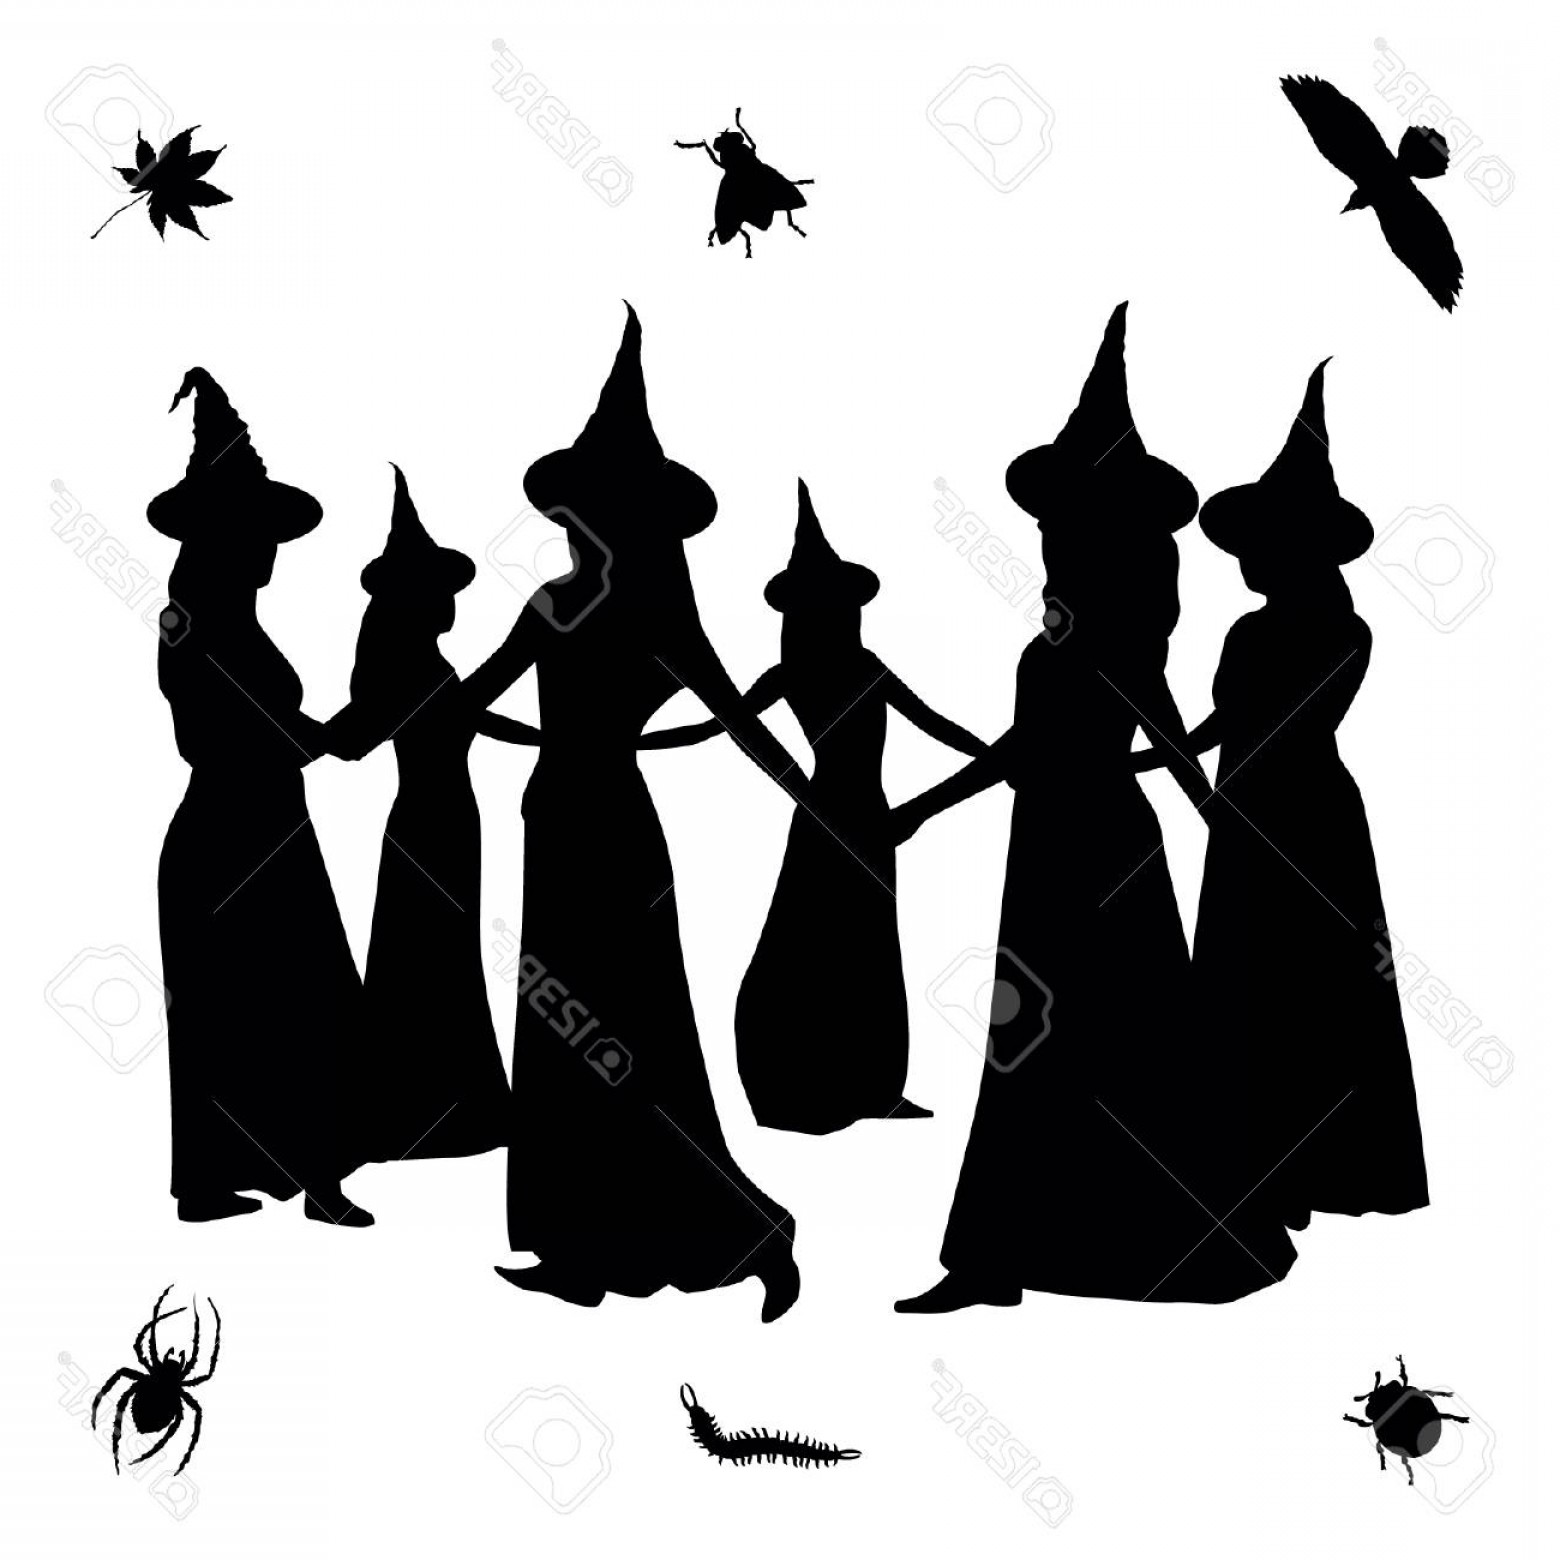 Witch Silhouette Vector: Photostock Vector Witch Silhouettes Vector Illustration